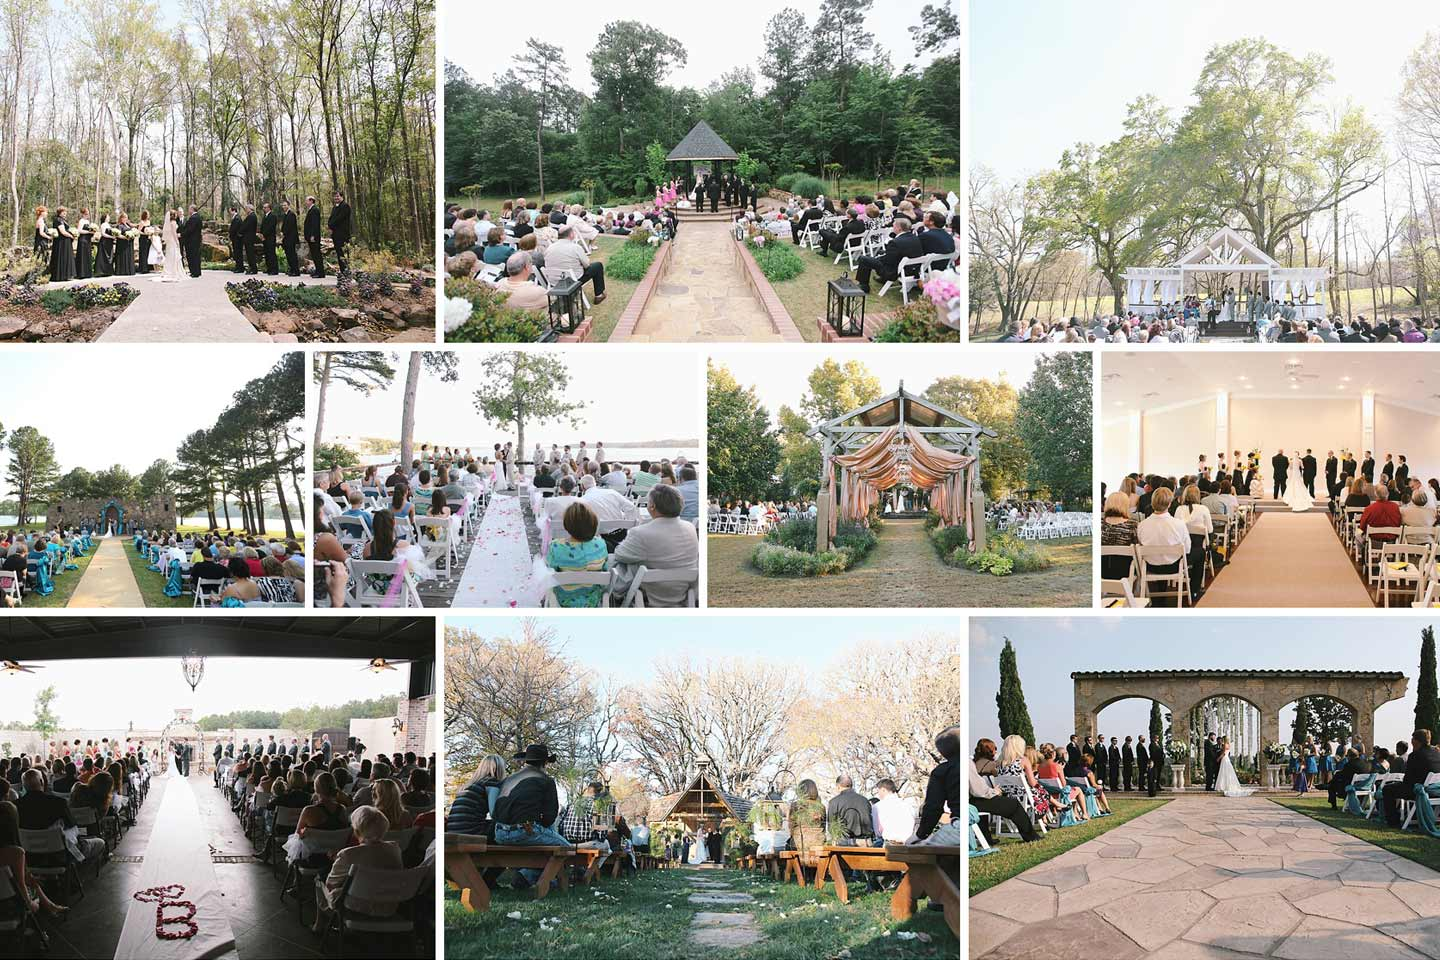 10 amazing places to get married in east texas alexm for Most amazing places to get married